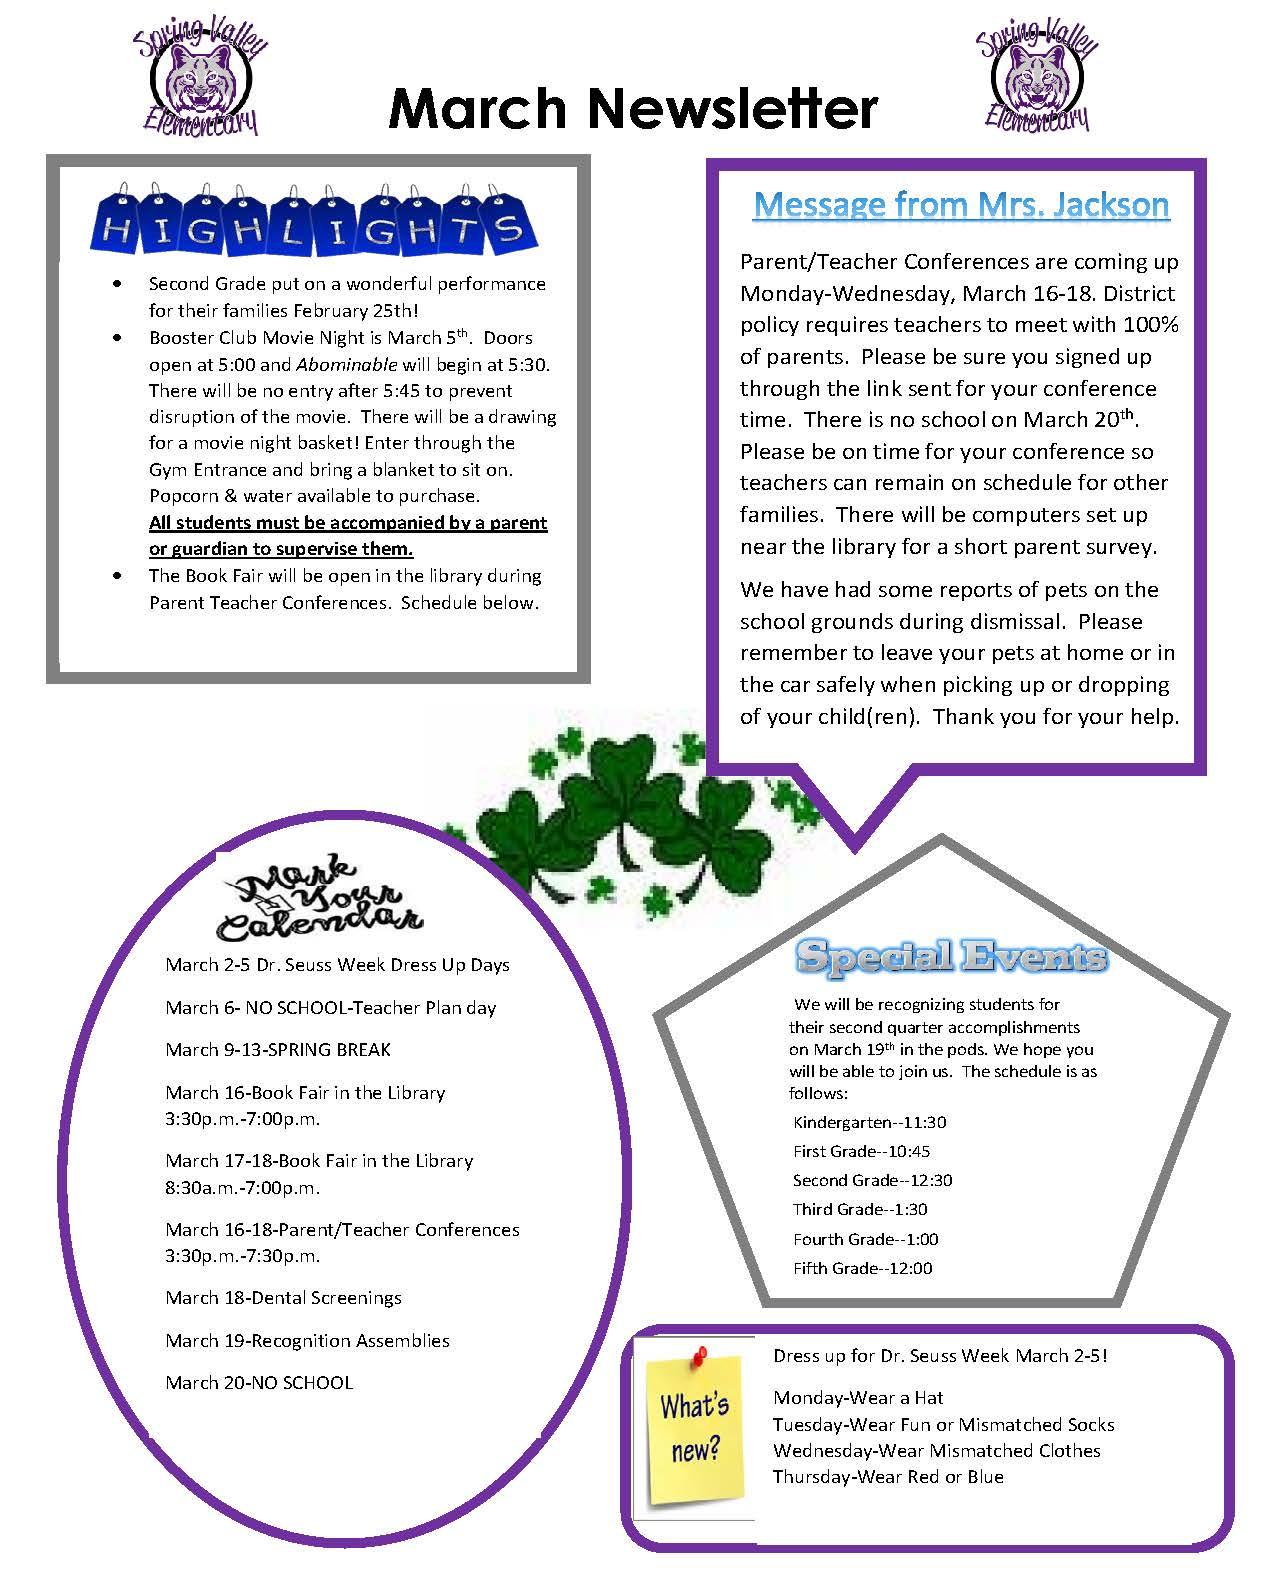 photograph of March Newsletter